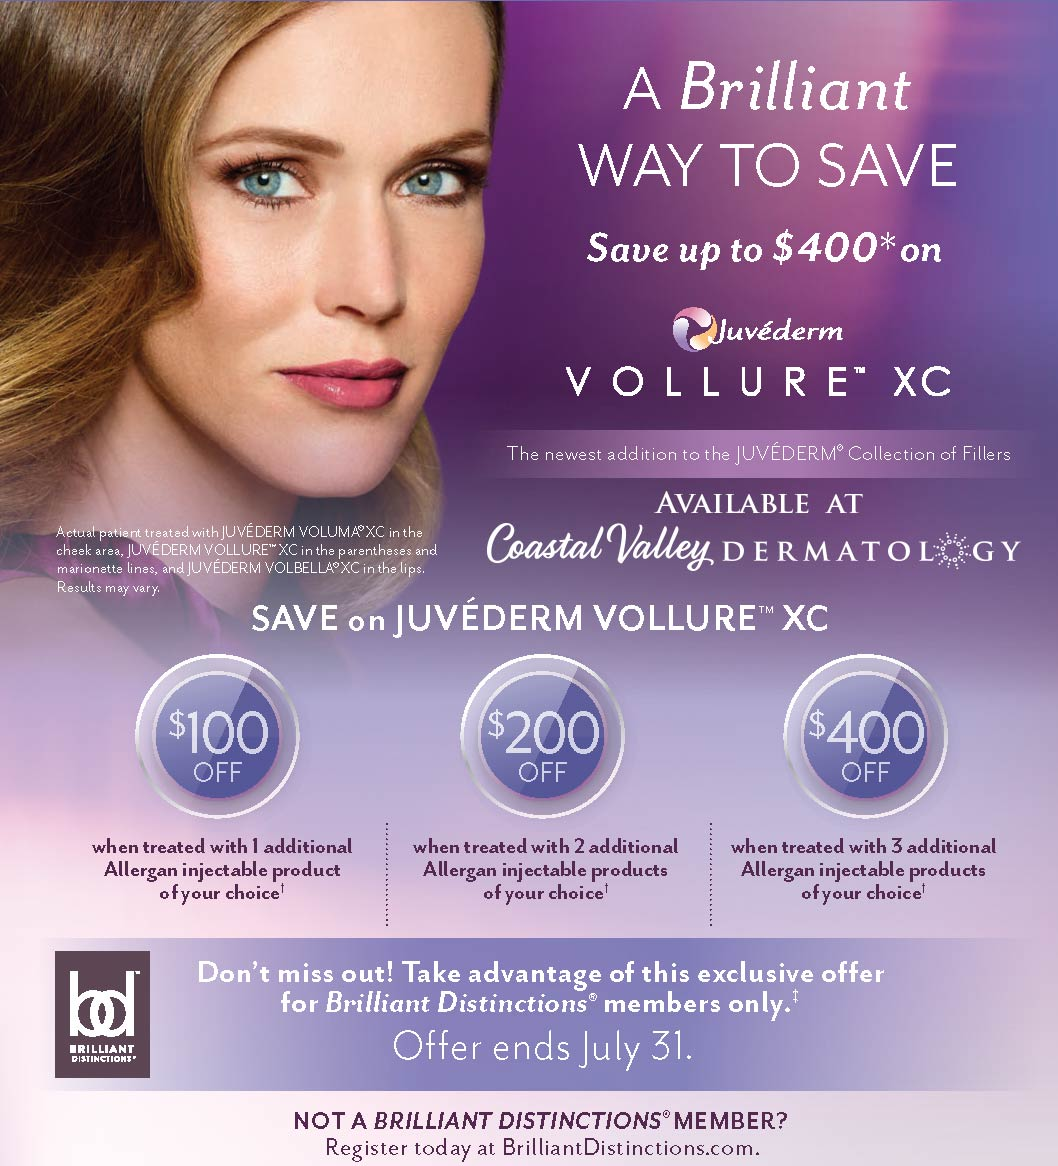 coastal-valley-dermatology-carmel-vollure-allergan-savings-photo